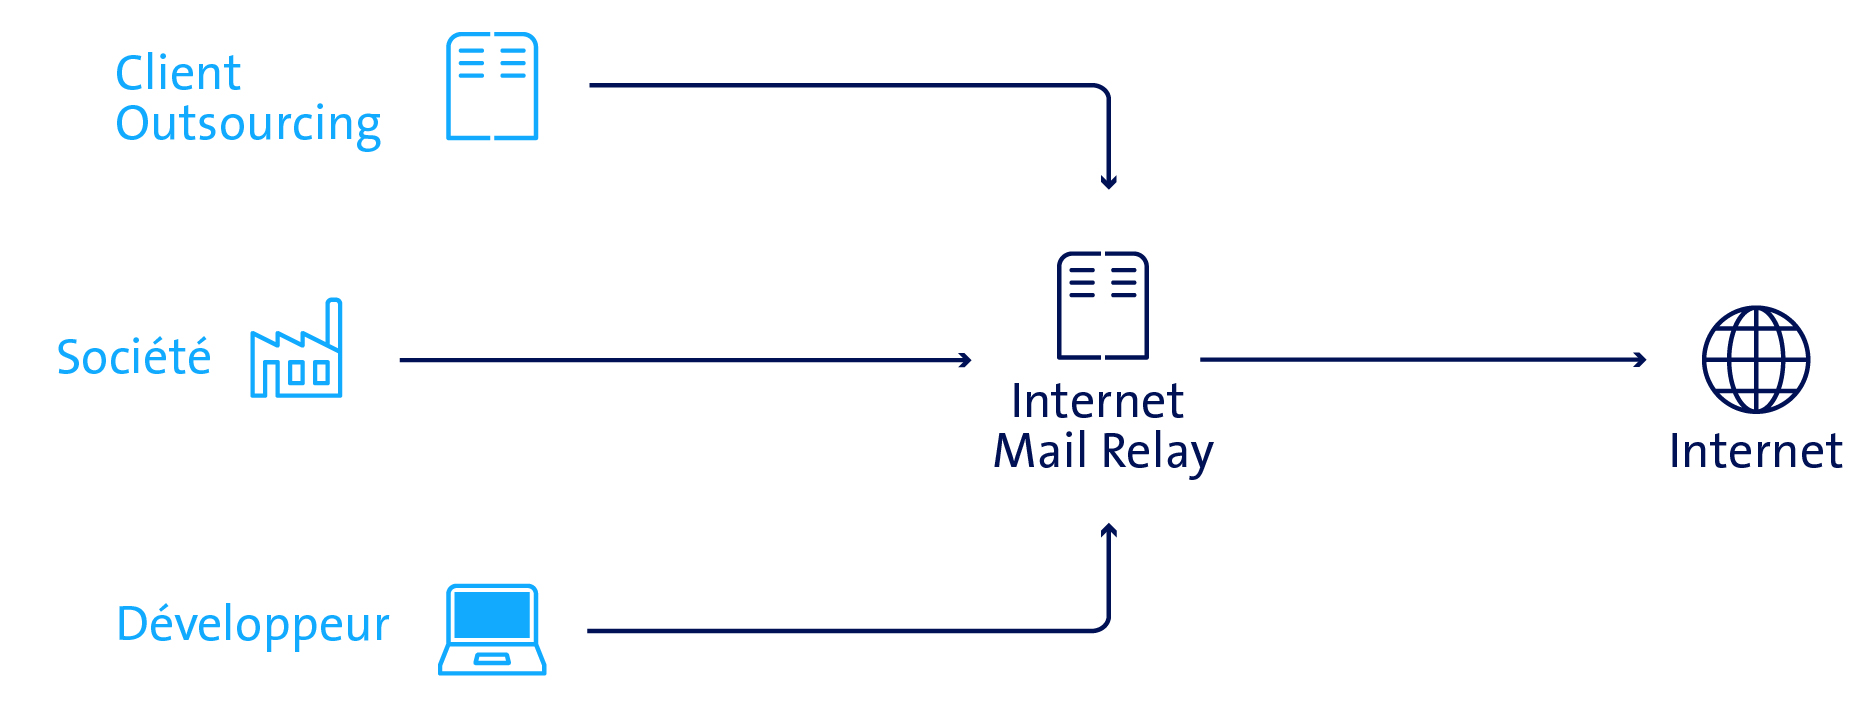 ent-sch-internet-mail-relay